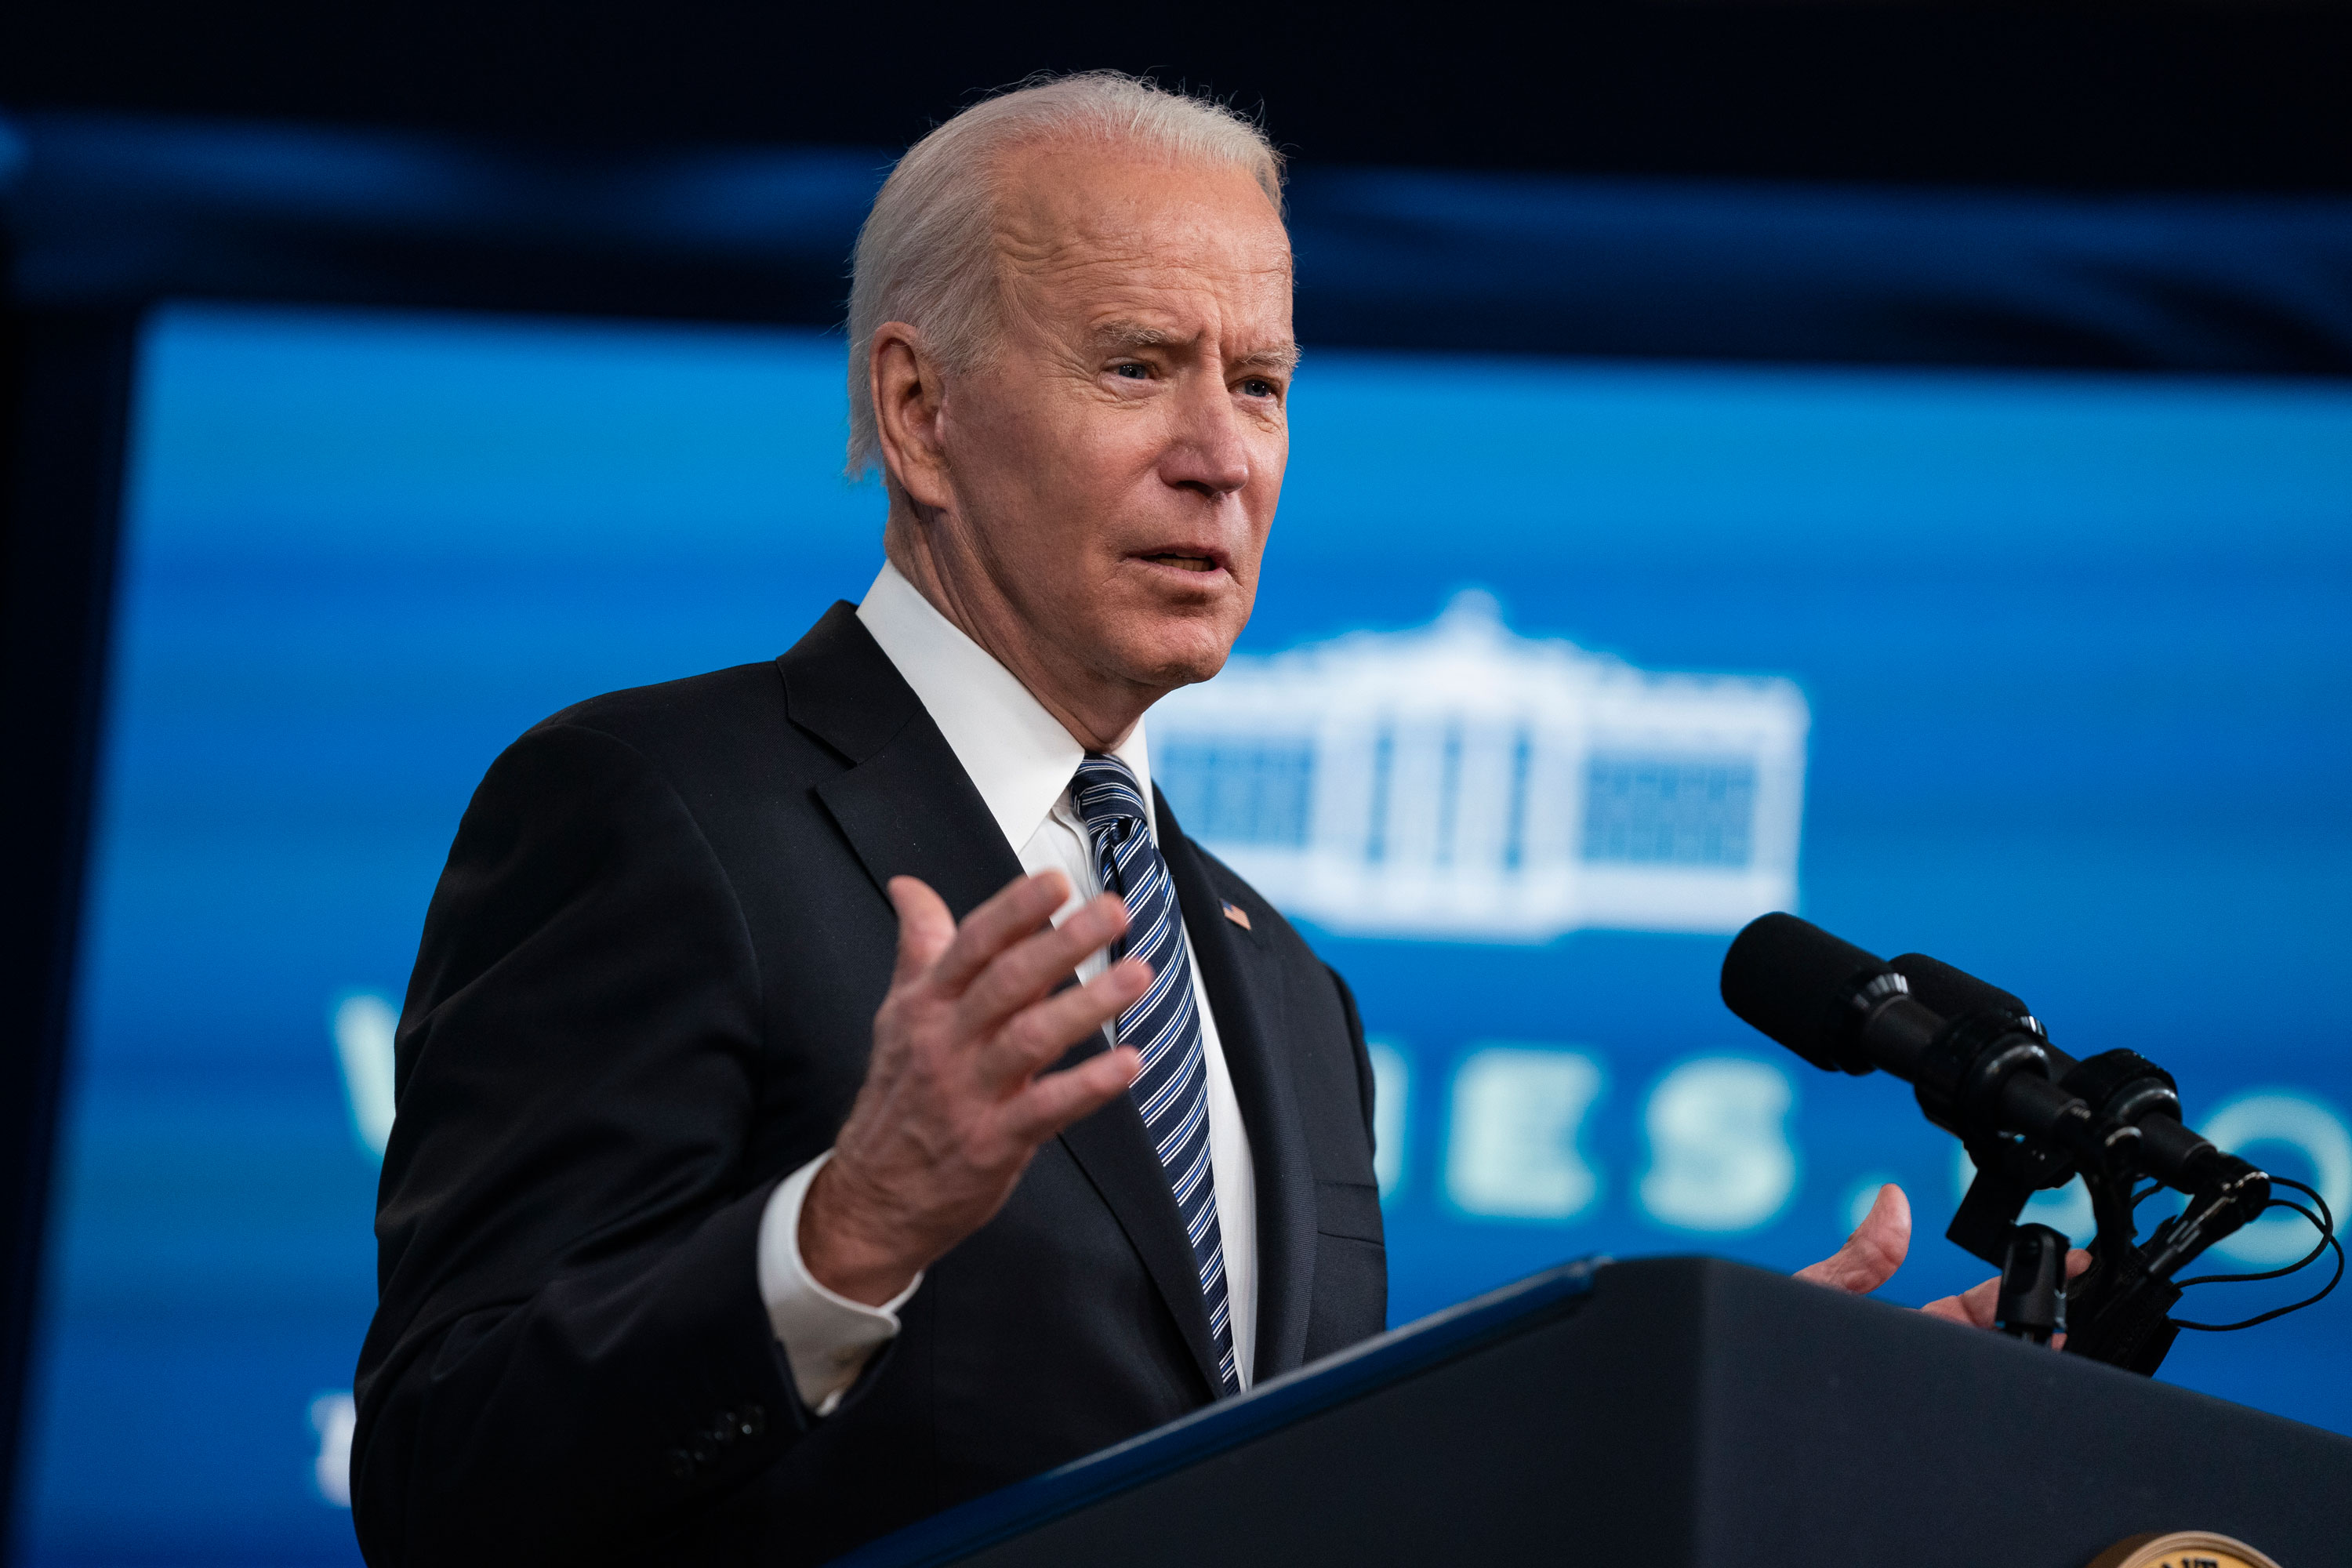 Biden warns gas station owners: 'Do not try to take advantage of consumers' during fuel crunch